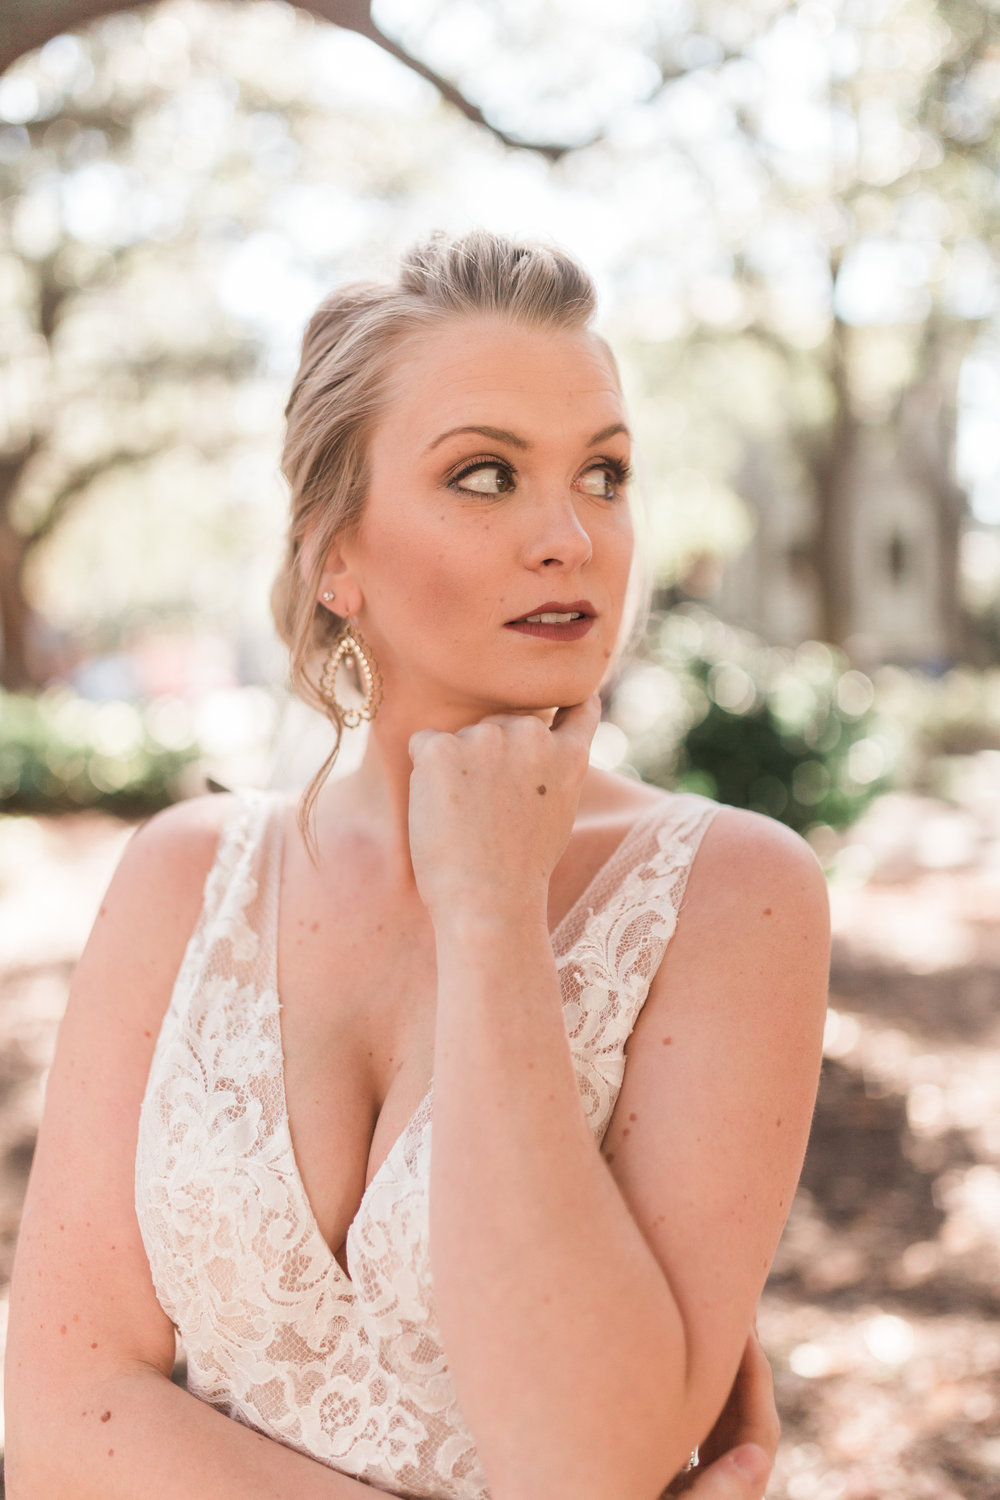 ivory-and-beau-bridal-boutique-savannah-bridal-boutique-savannah-wedding-coordinator-savannah-wedding-planner-bud-johnson-photography-jeff-bush-videography.jpg